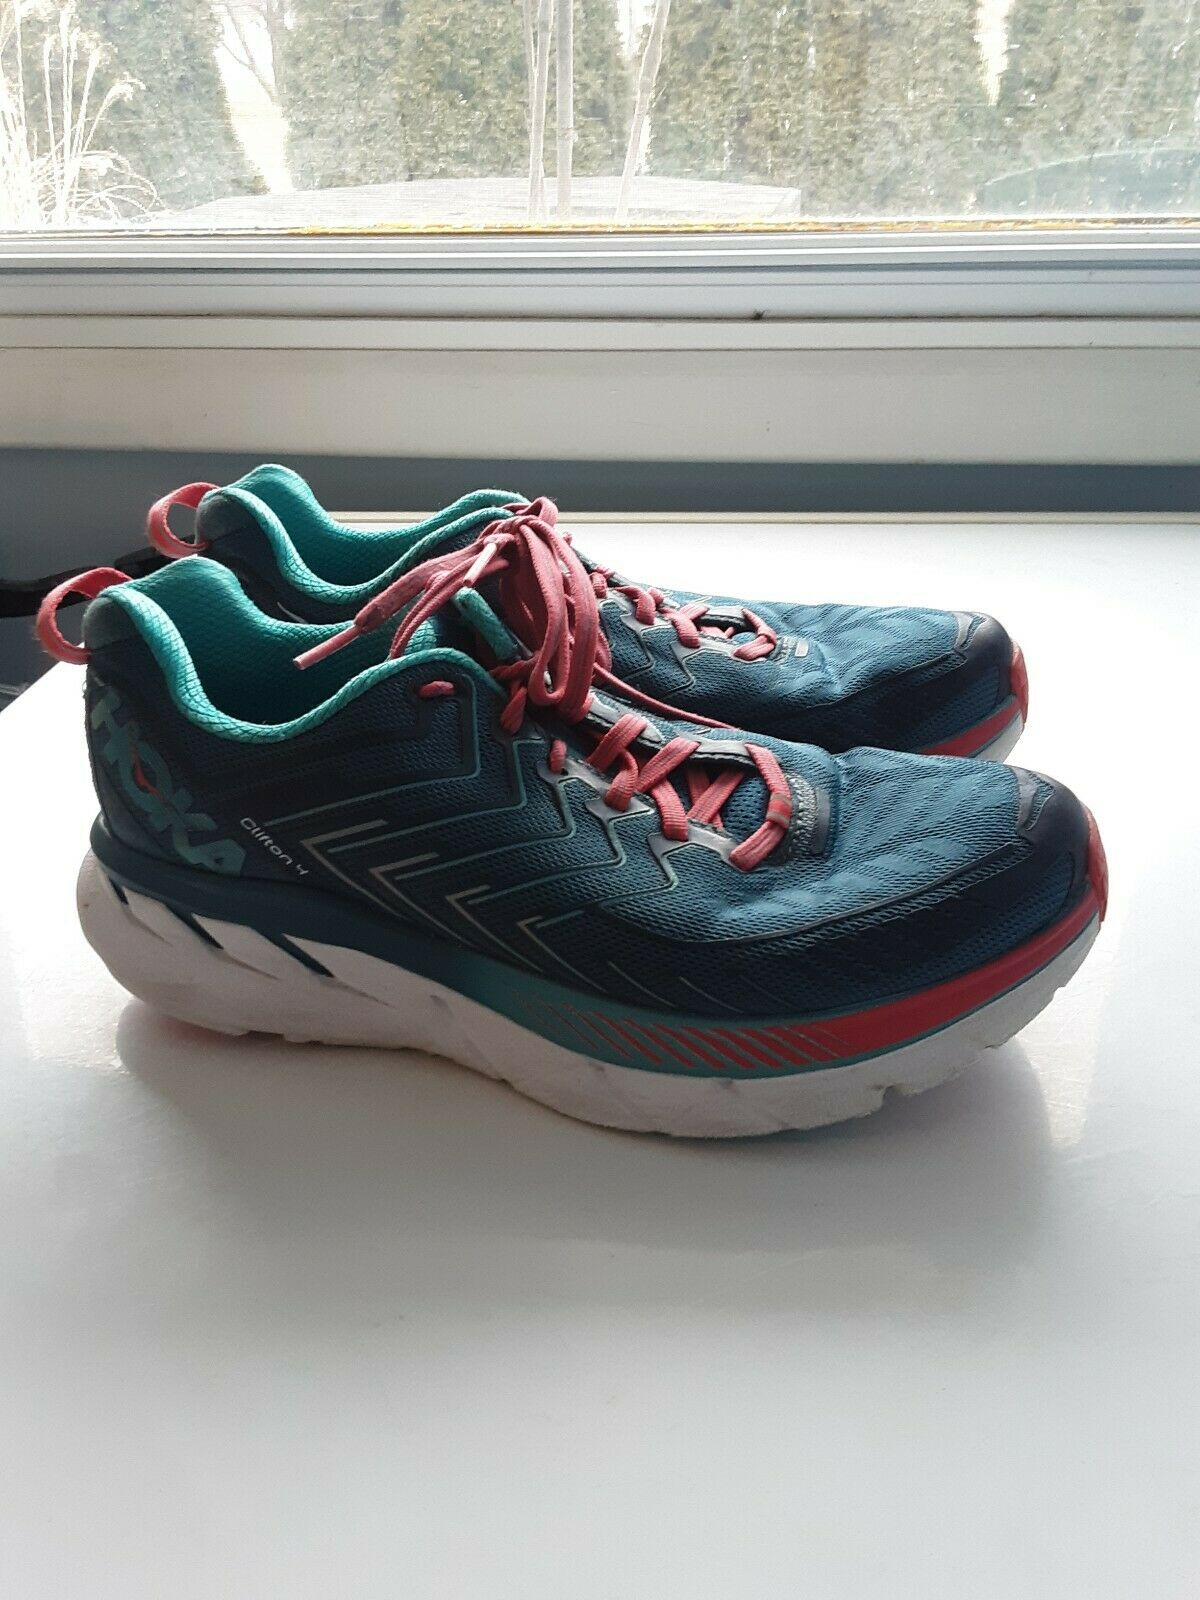 Hoka One One Clifton 4 Women's Running shoes SZ 8